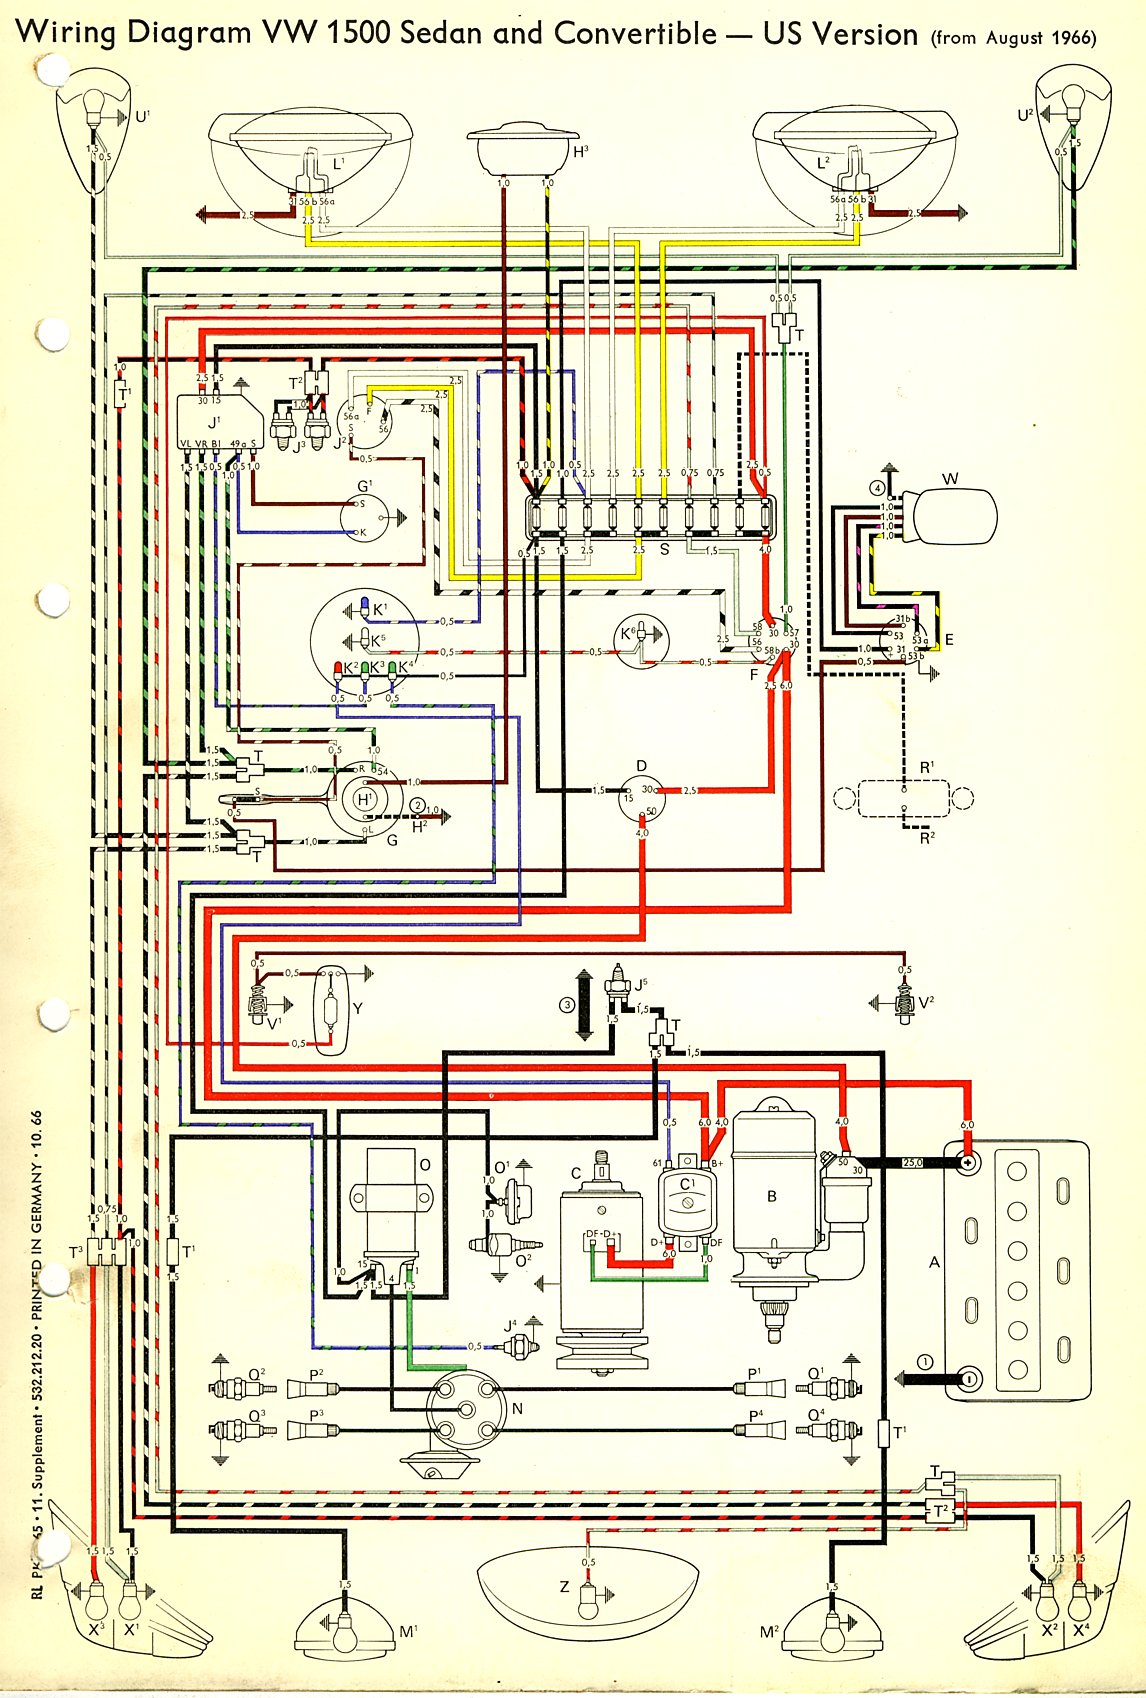 bug_67_USA thesamba com type 1 wiring diagrams 77 VW Van Wiring Diagram at cos-gaming.co